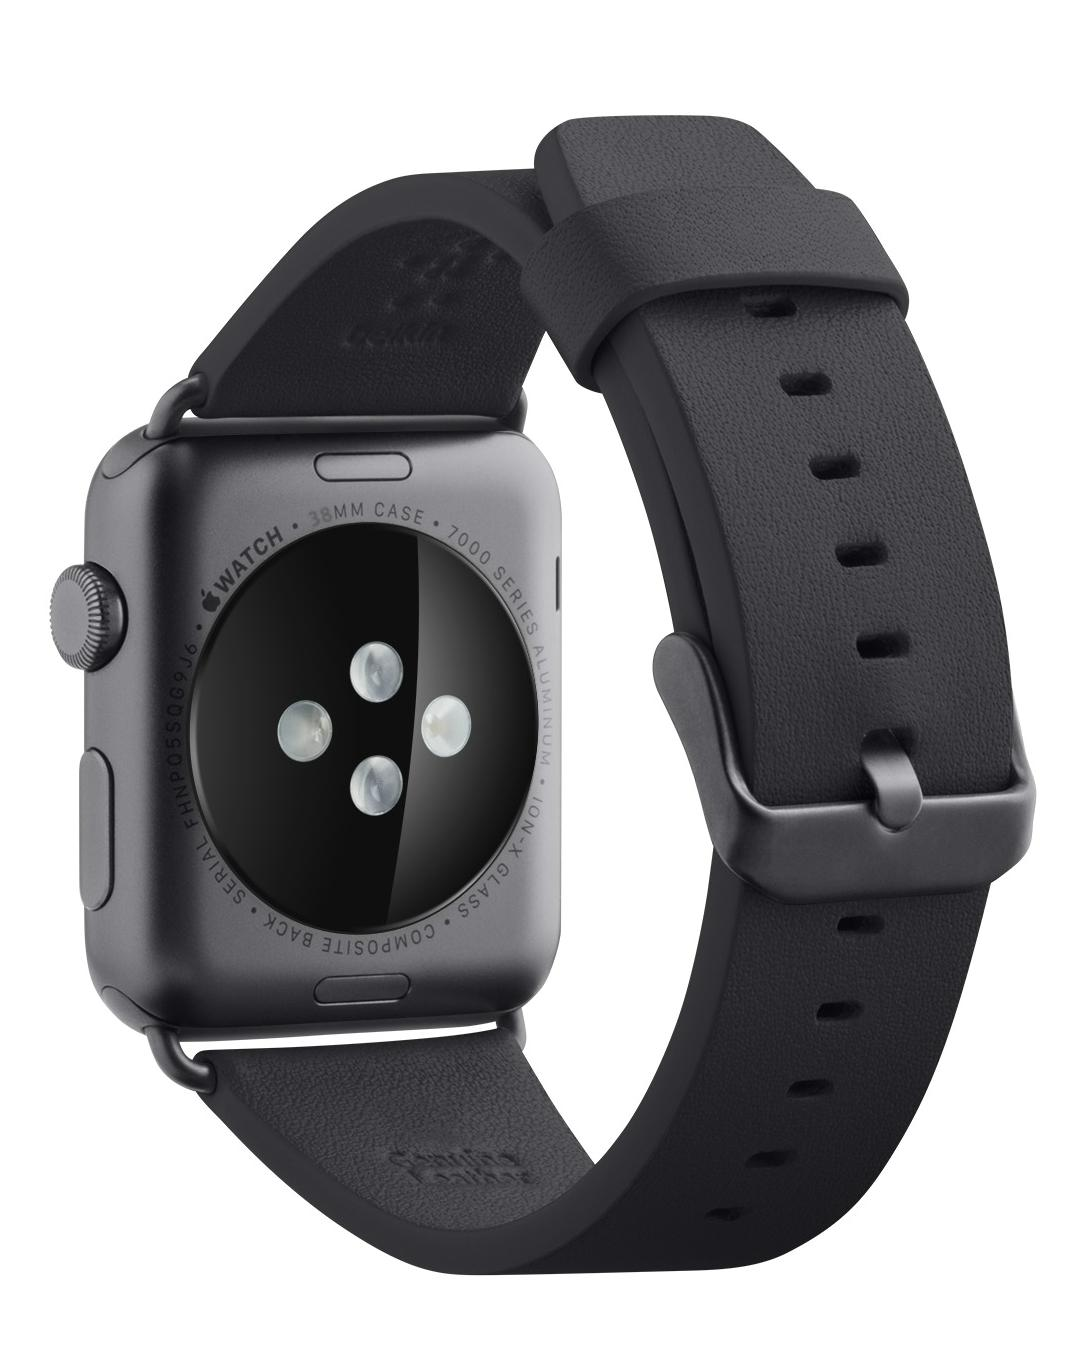 Amazon.com: Belkin Classic Leather Wristband for Apple